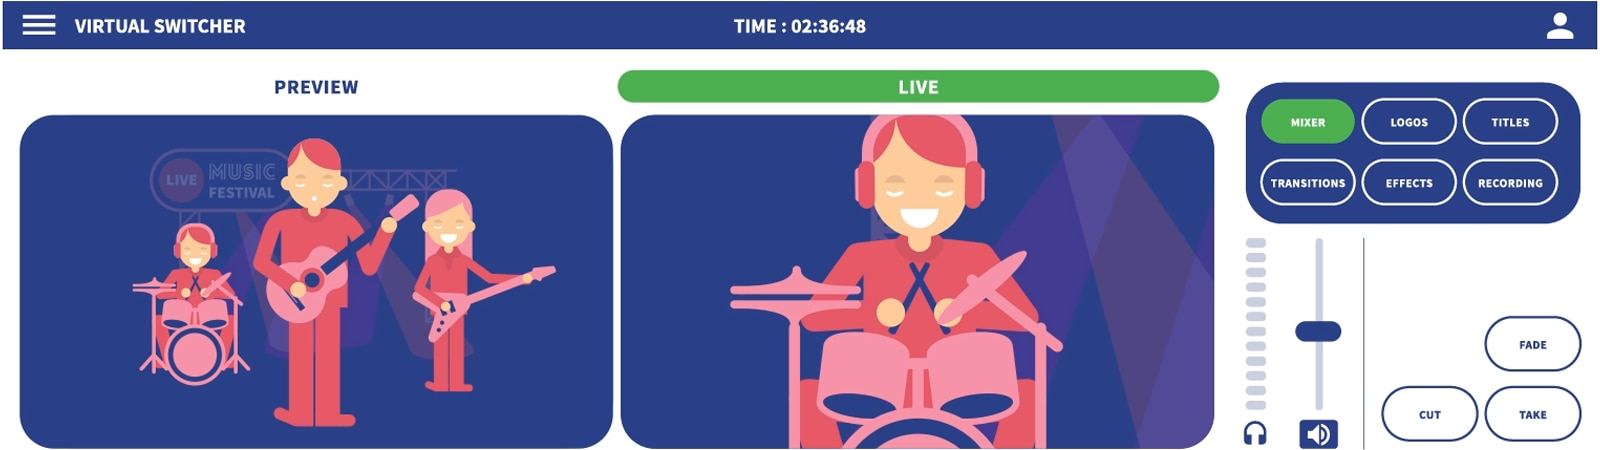 Infographic of a virtual switcher with a music band playing and a drummer.